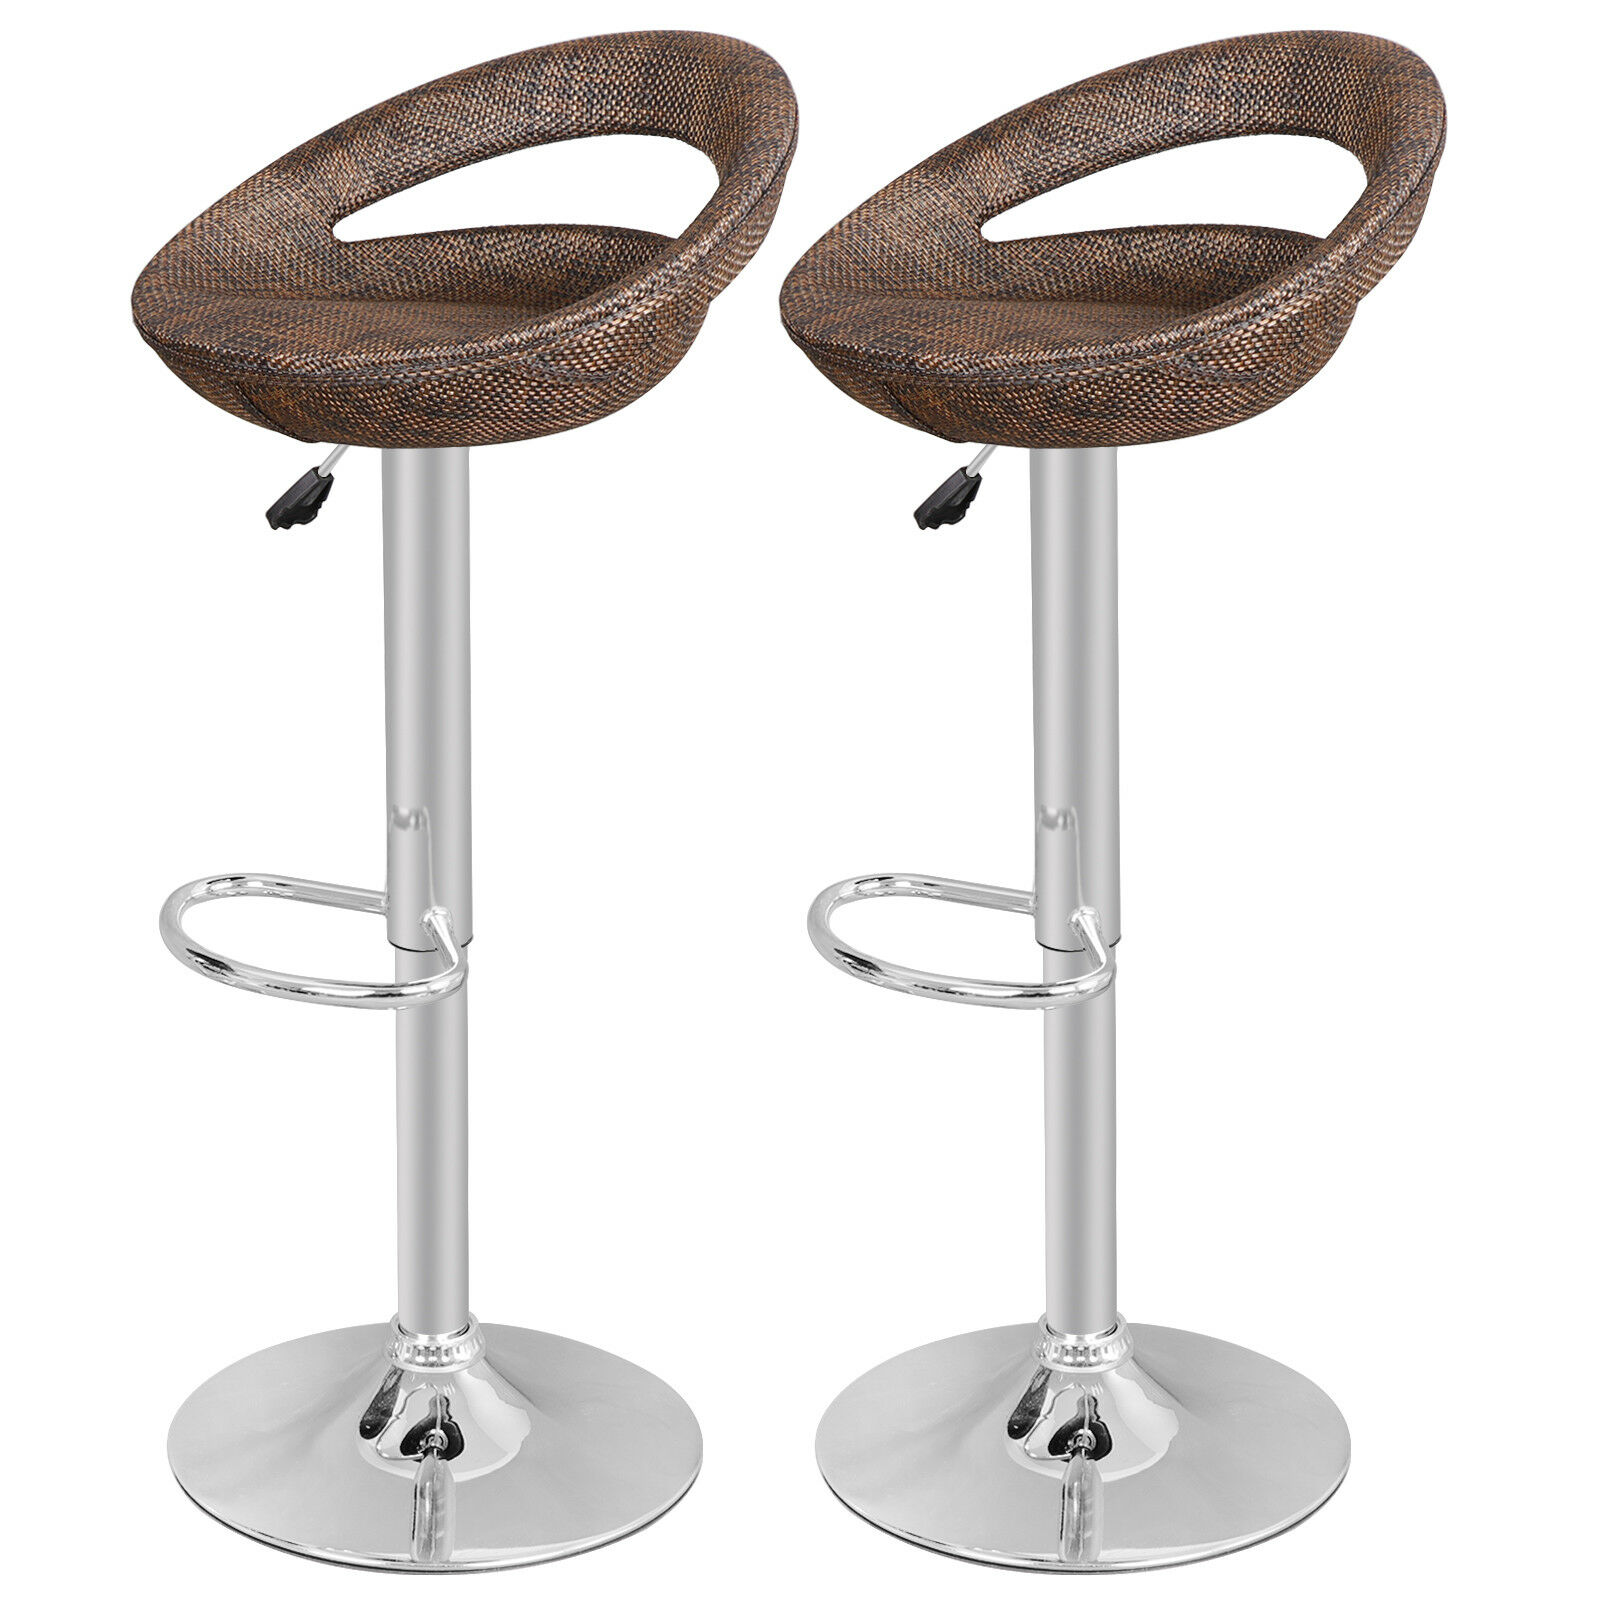 6 Pieces Modern Adjustable Height Swivel Wicker Bar Stool Home Pub ABS Rattan Benches, Stools & Bar Stools